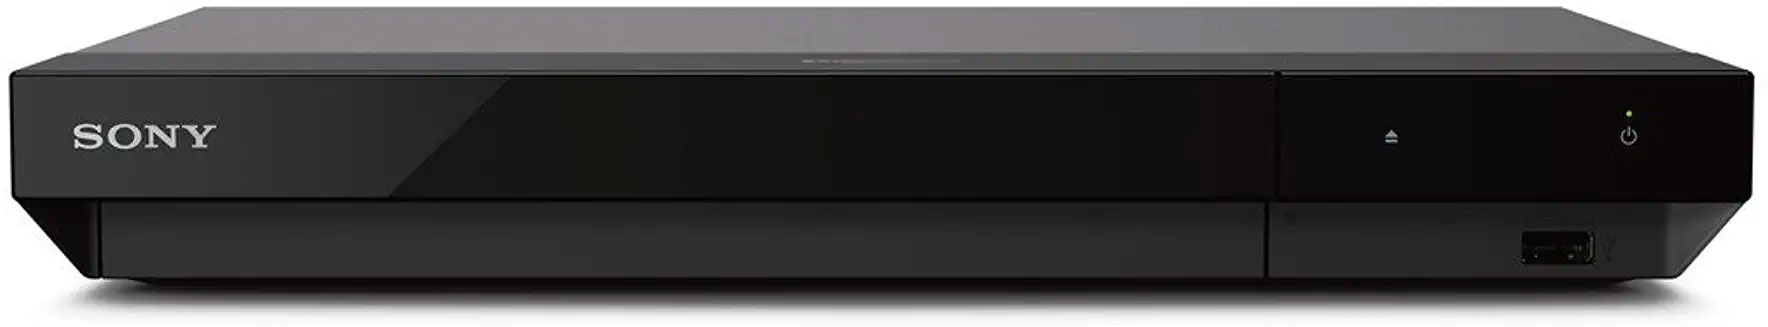 Sony UBP-X700 4K Ultra HD Blu-Ray Player (2018)